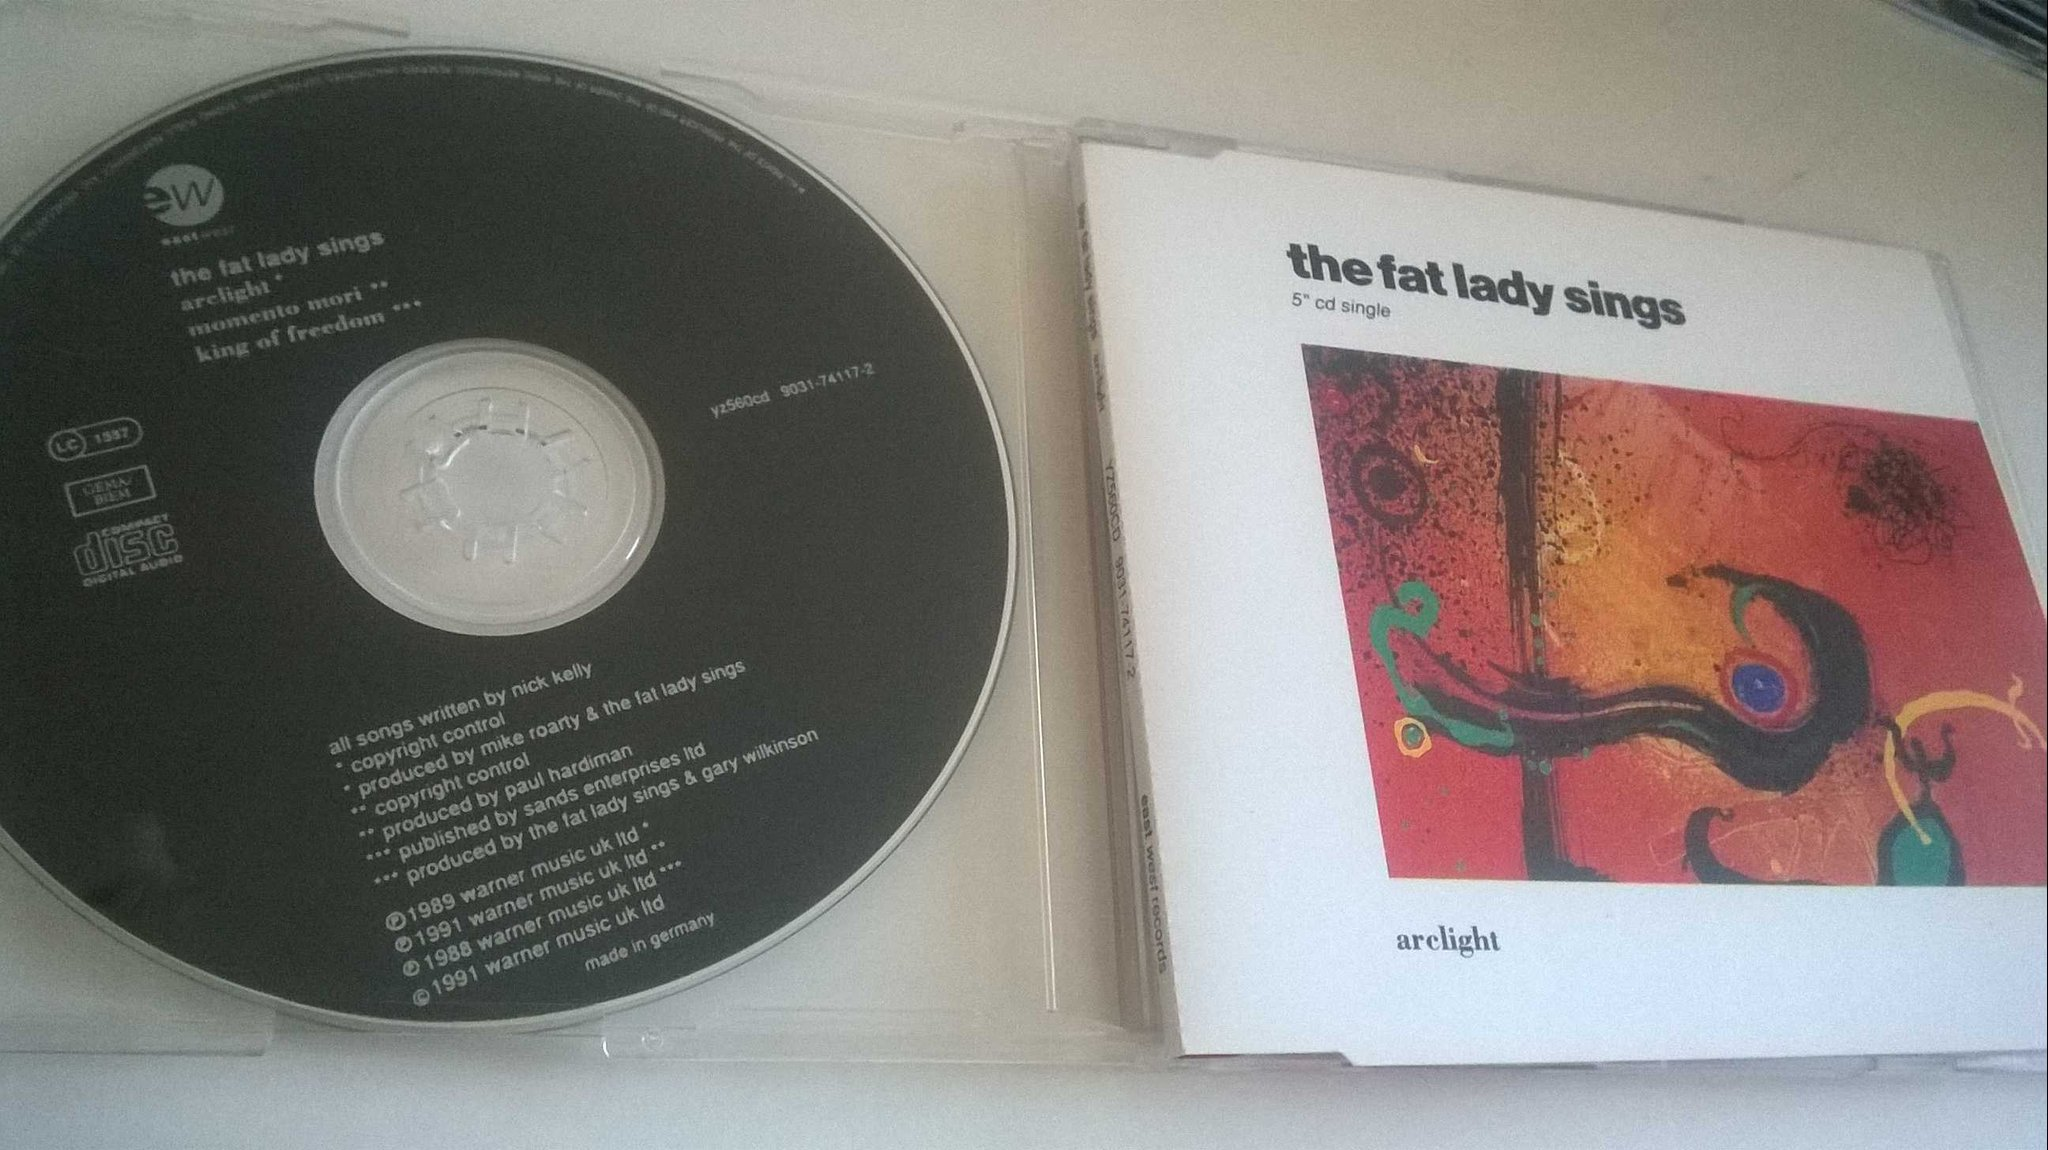 The Fat Lady Sings - Arclight, CD, Single